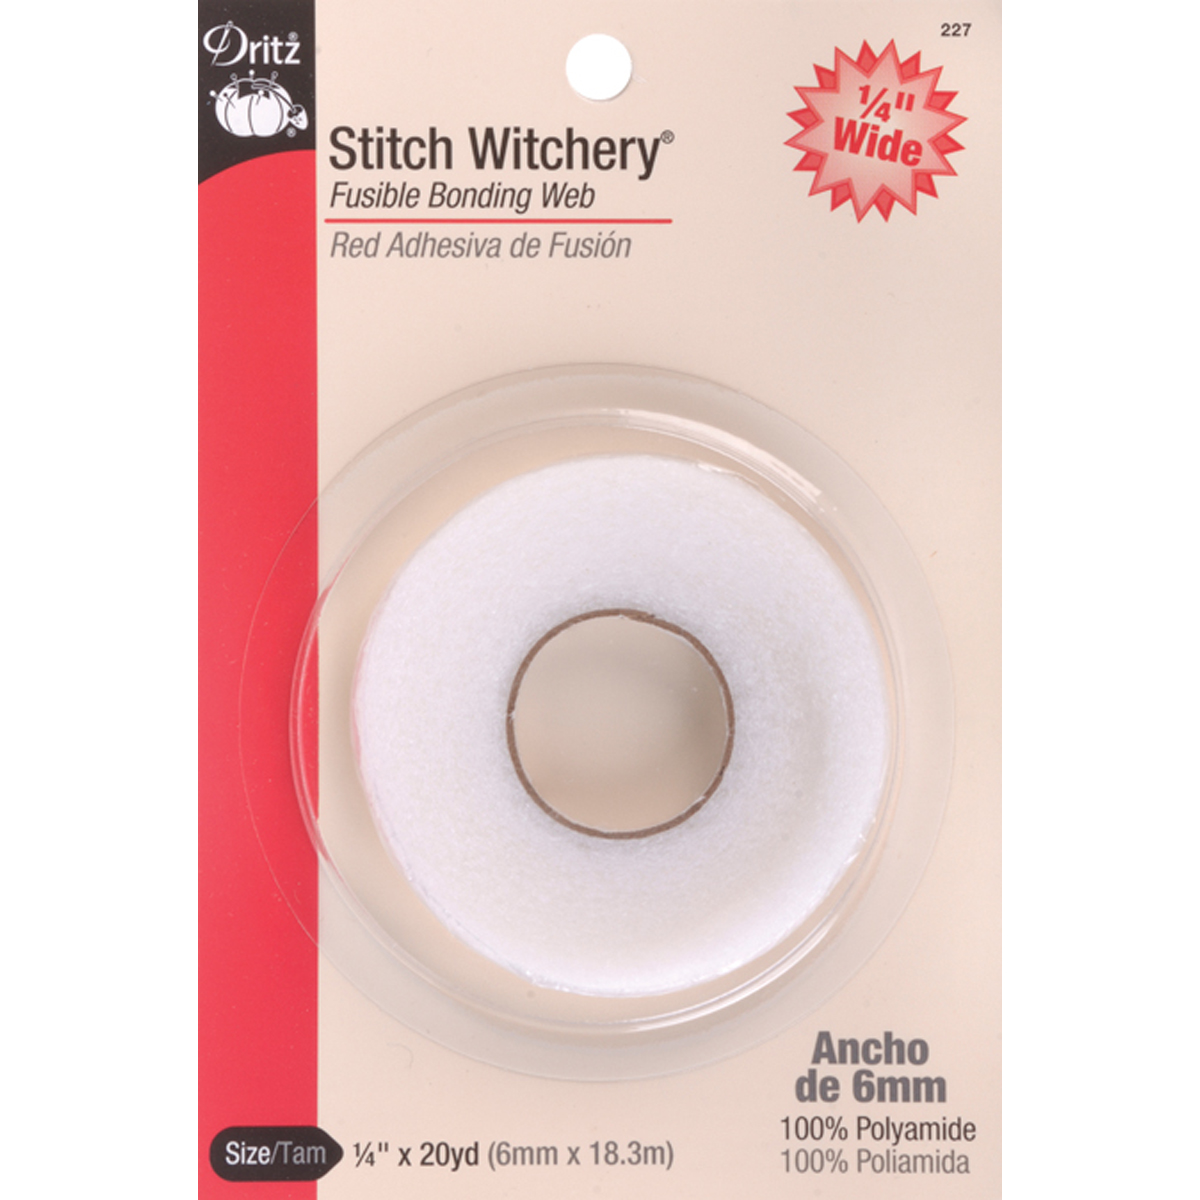 "Dritz Stitch Witchery Fusible Bonding Web Narrow-.25""X20yd"